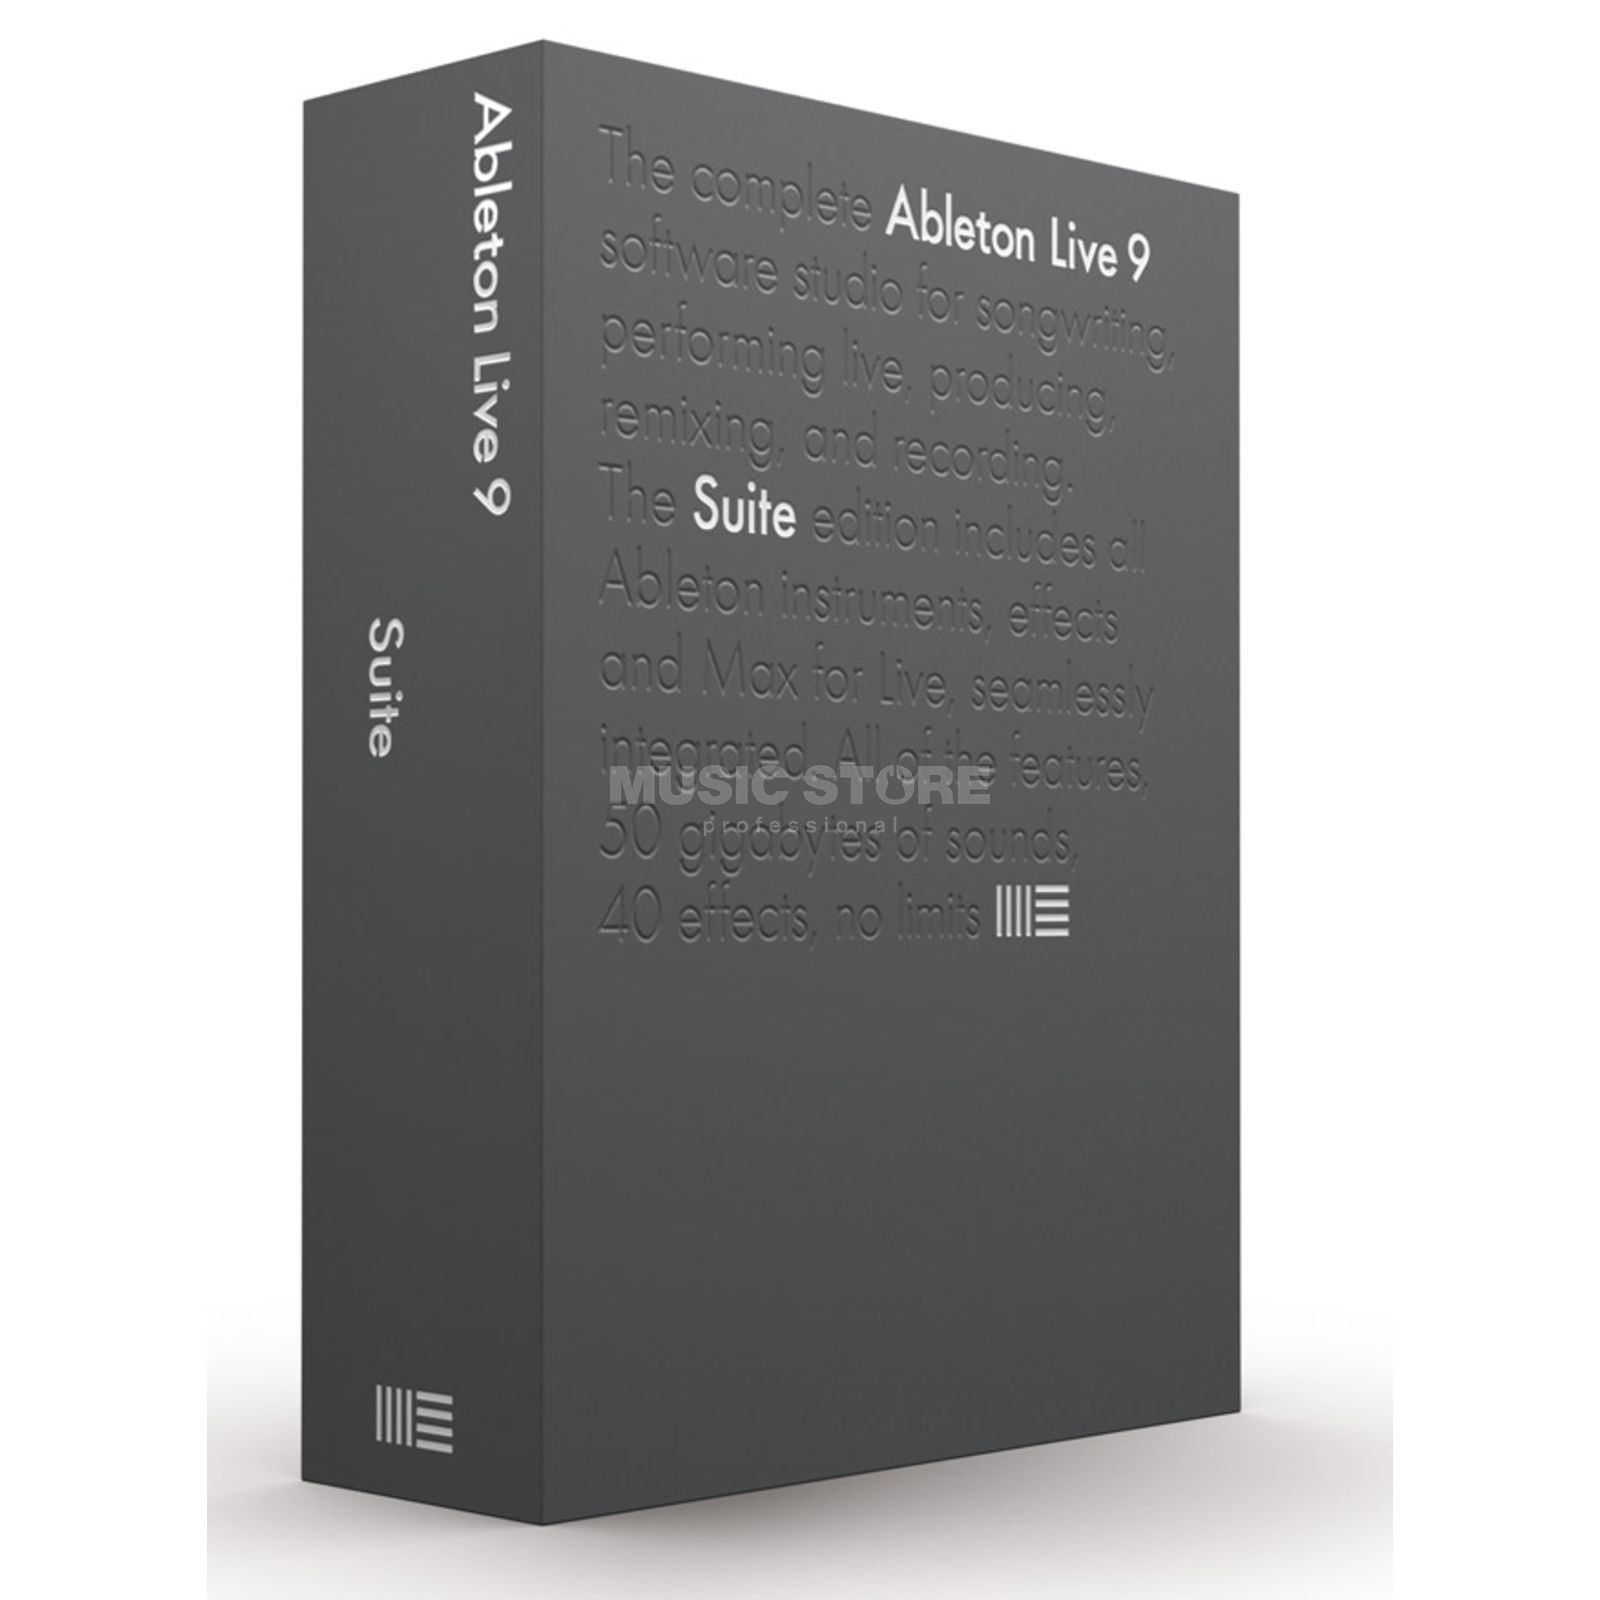 Ableton LIVE 9 SUITE EDU deutsch Boxed Version Produktbild